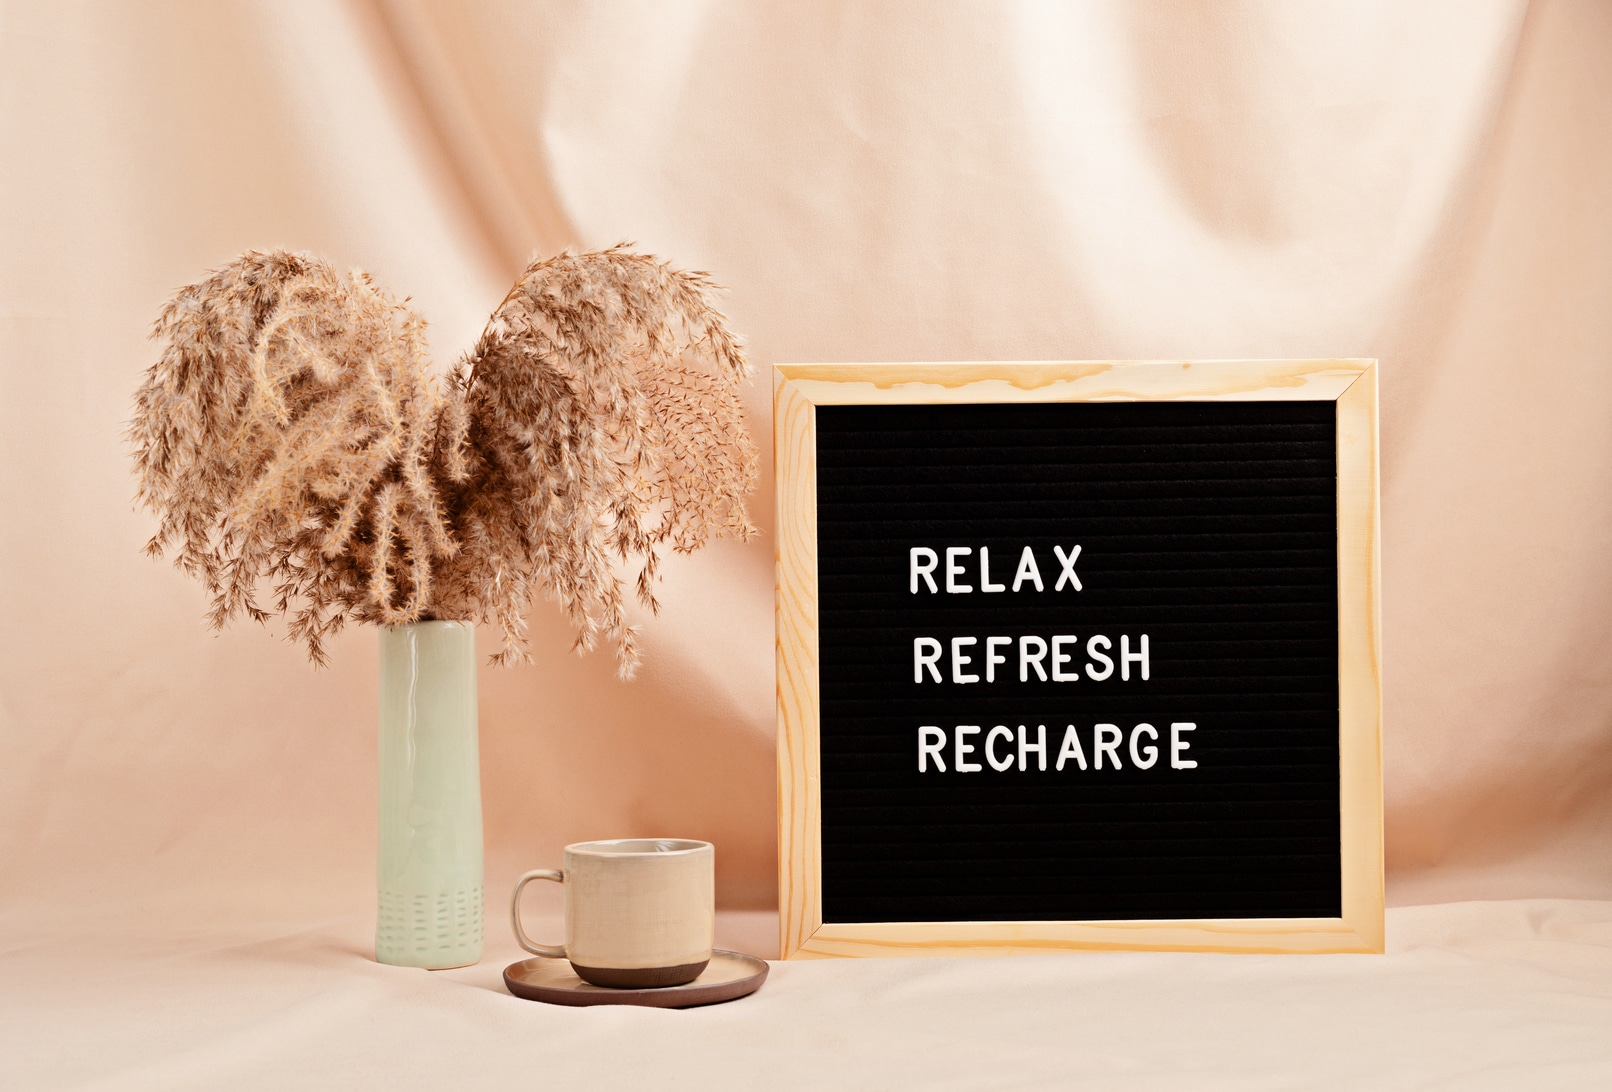 relax-refresh-recharge-motivational-quote-alignthoughts